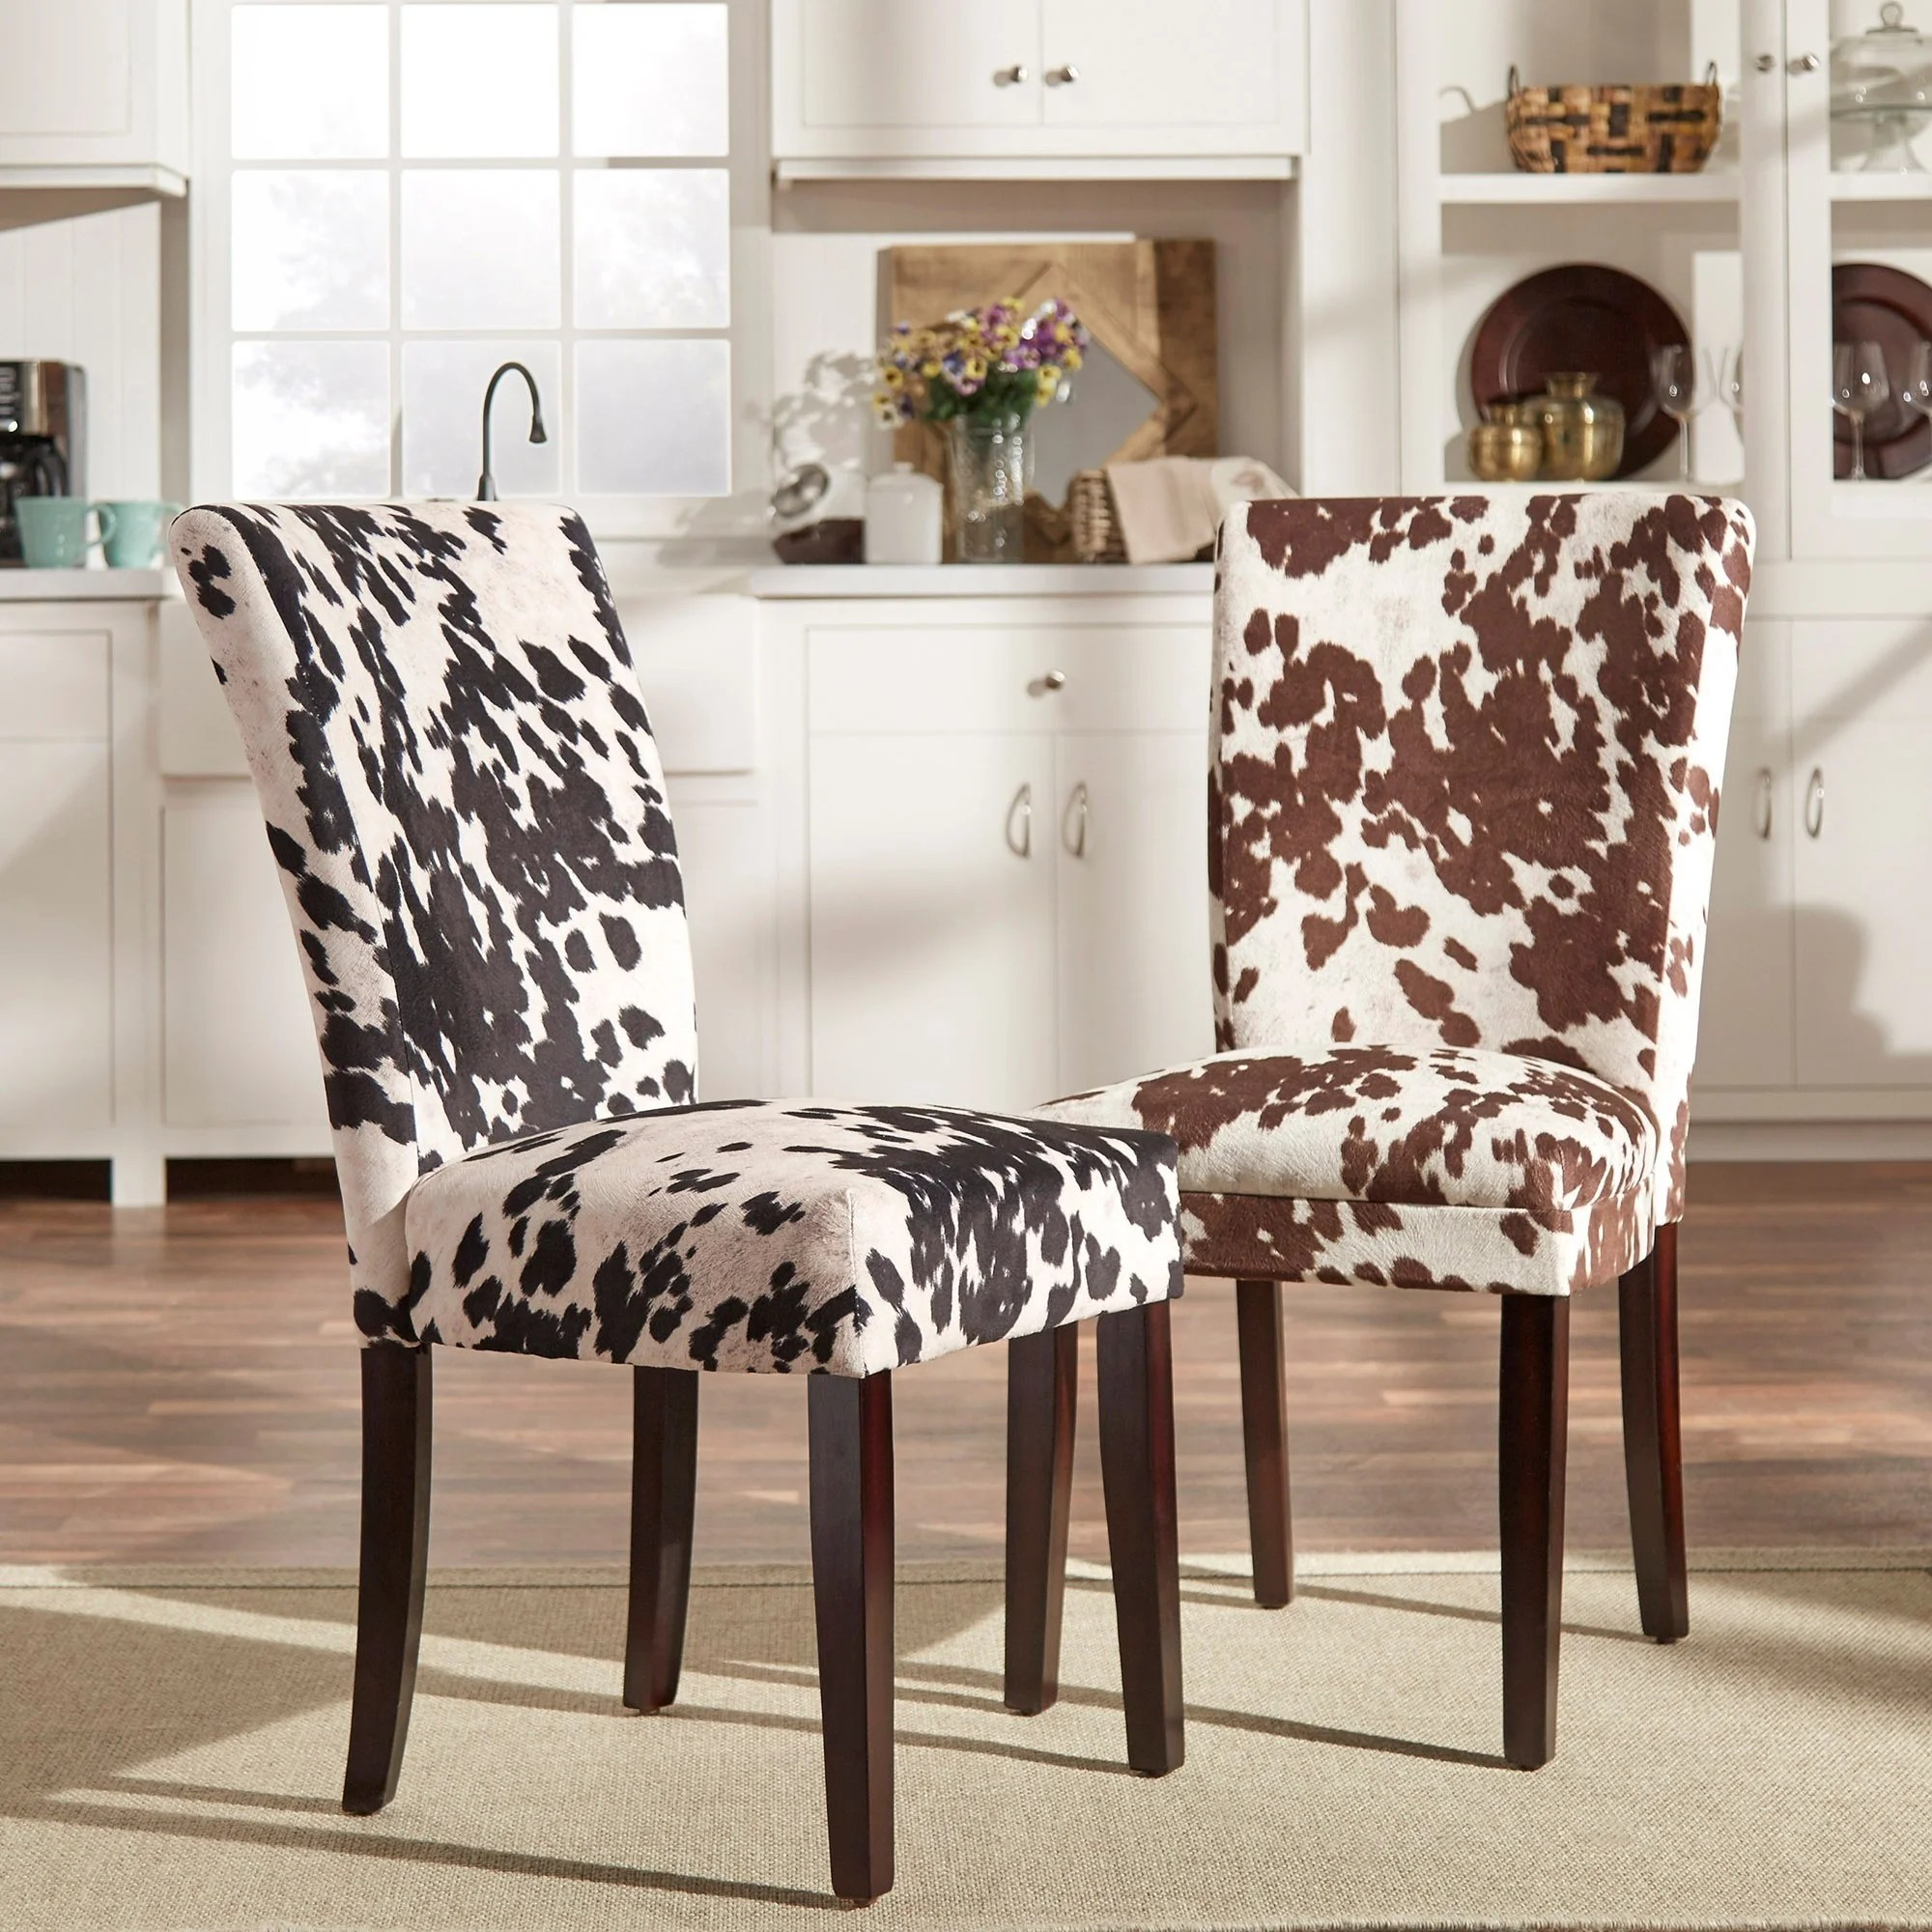 Cow Hide Chair Portman Cow Hide Parson Dining Chairs Set Of 2 By Inspire Q Bold